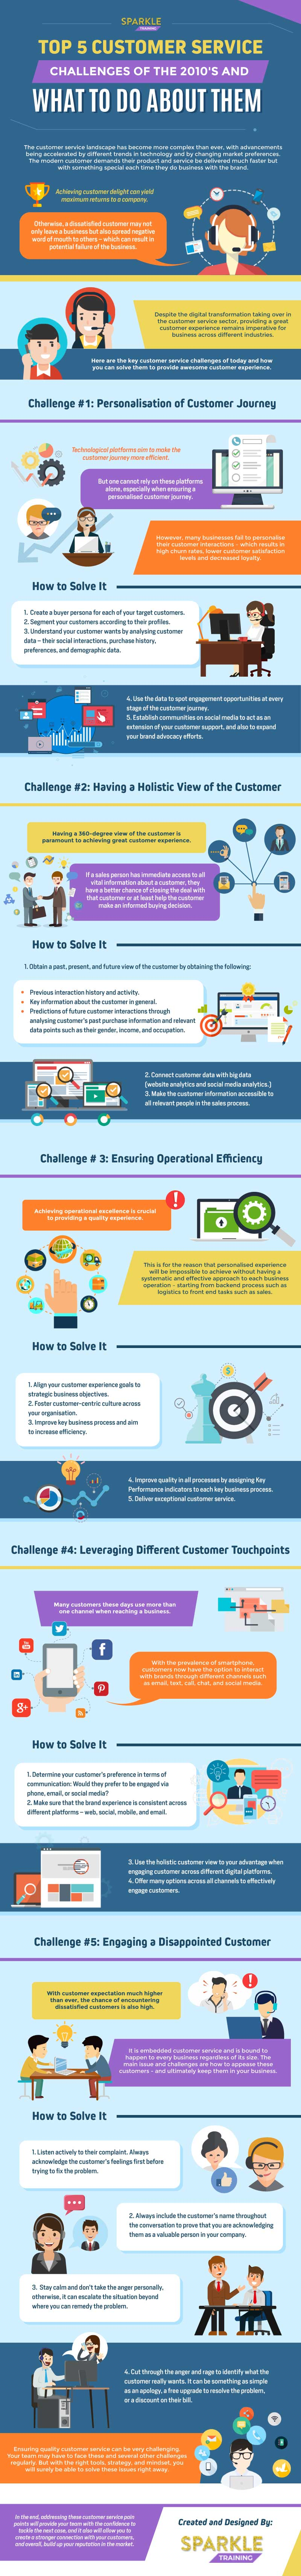 Top-5-Customer-Service-Challenges-Of-The-2010s-And-What-To-Do-About-Them